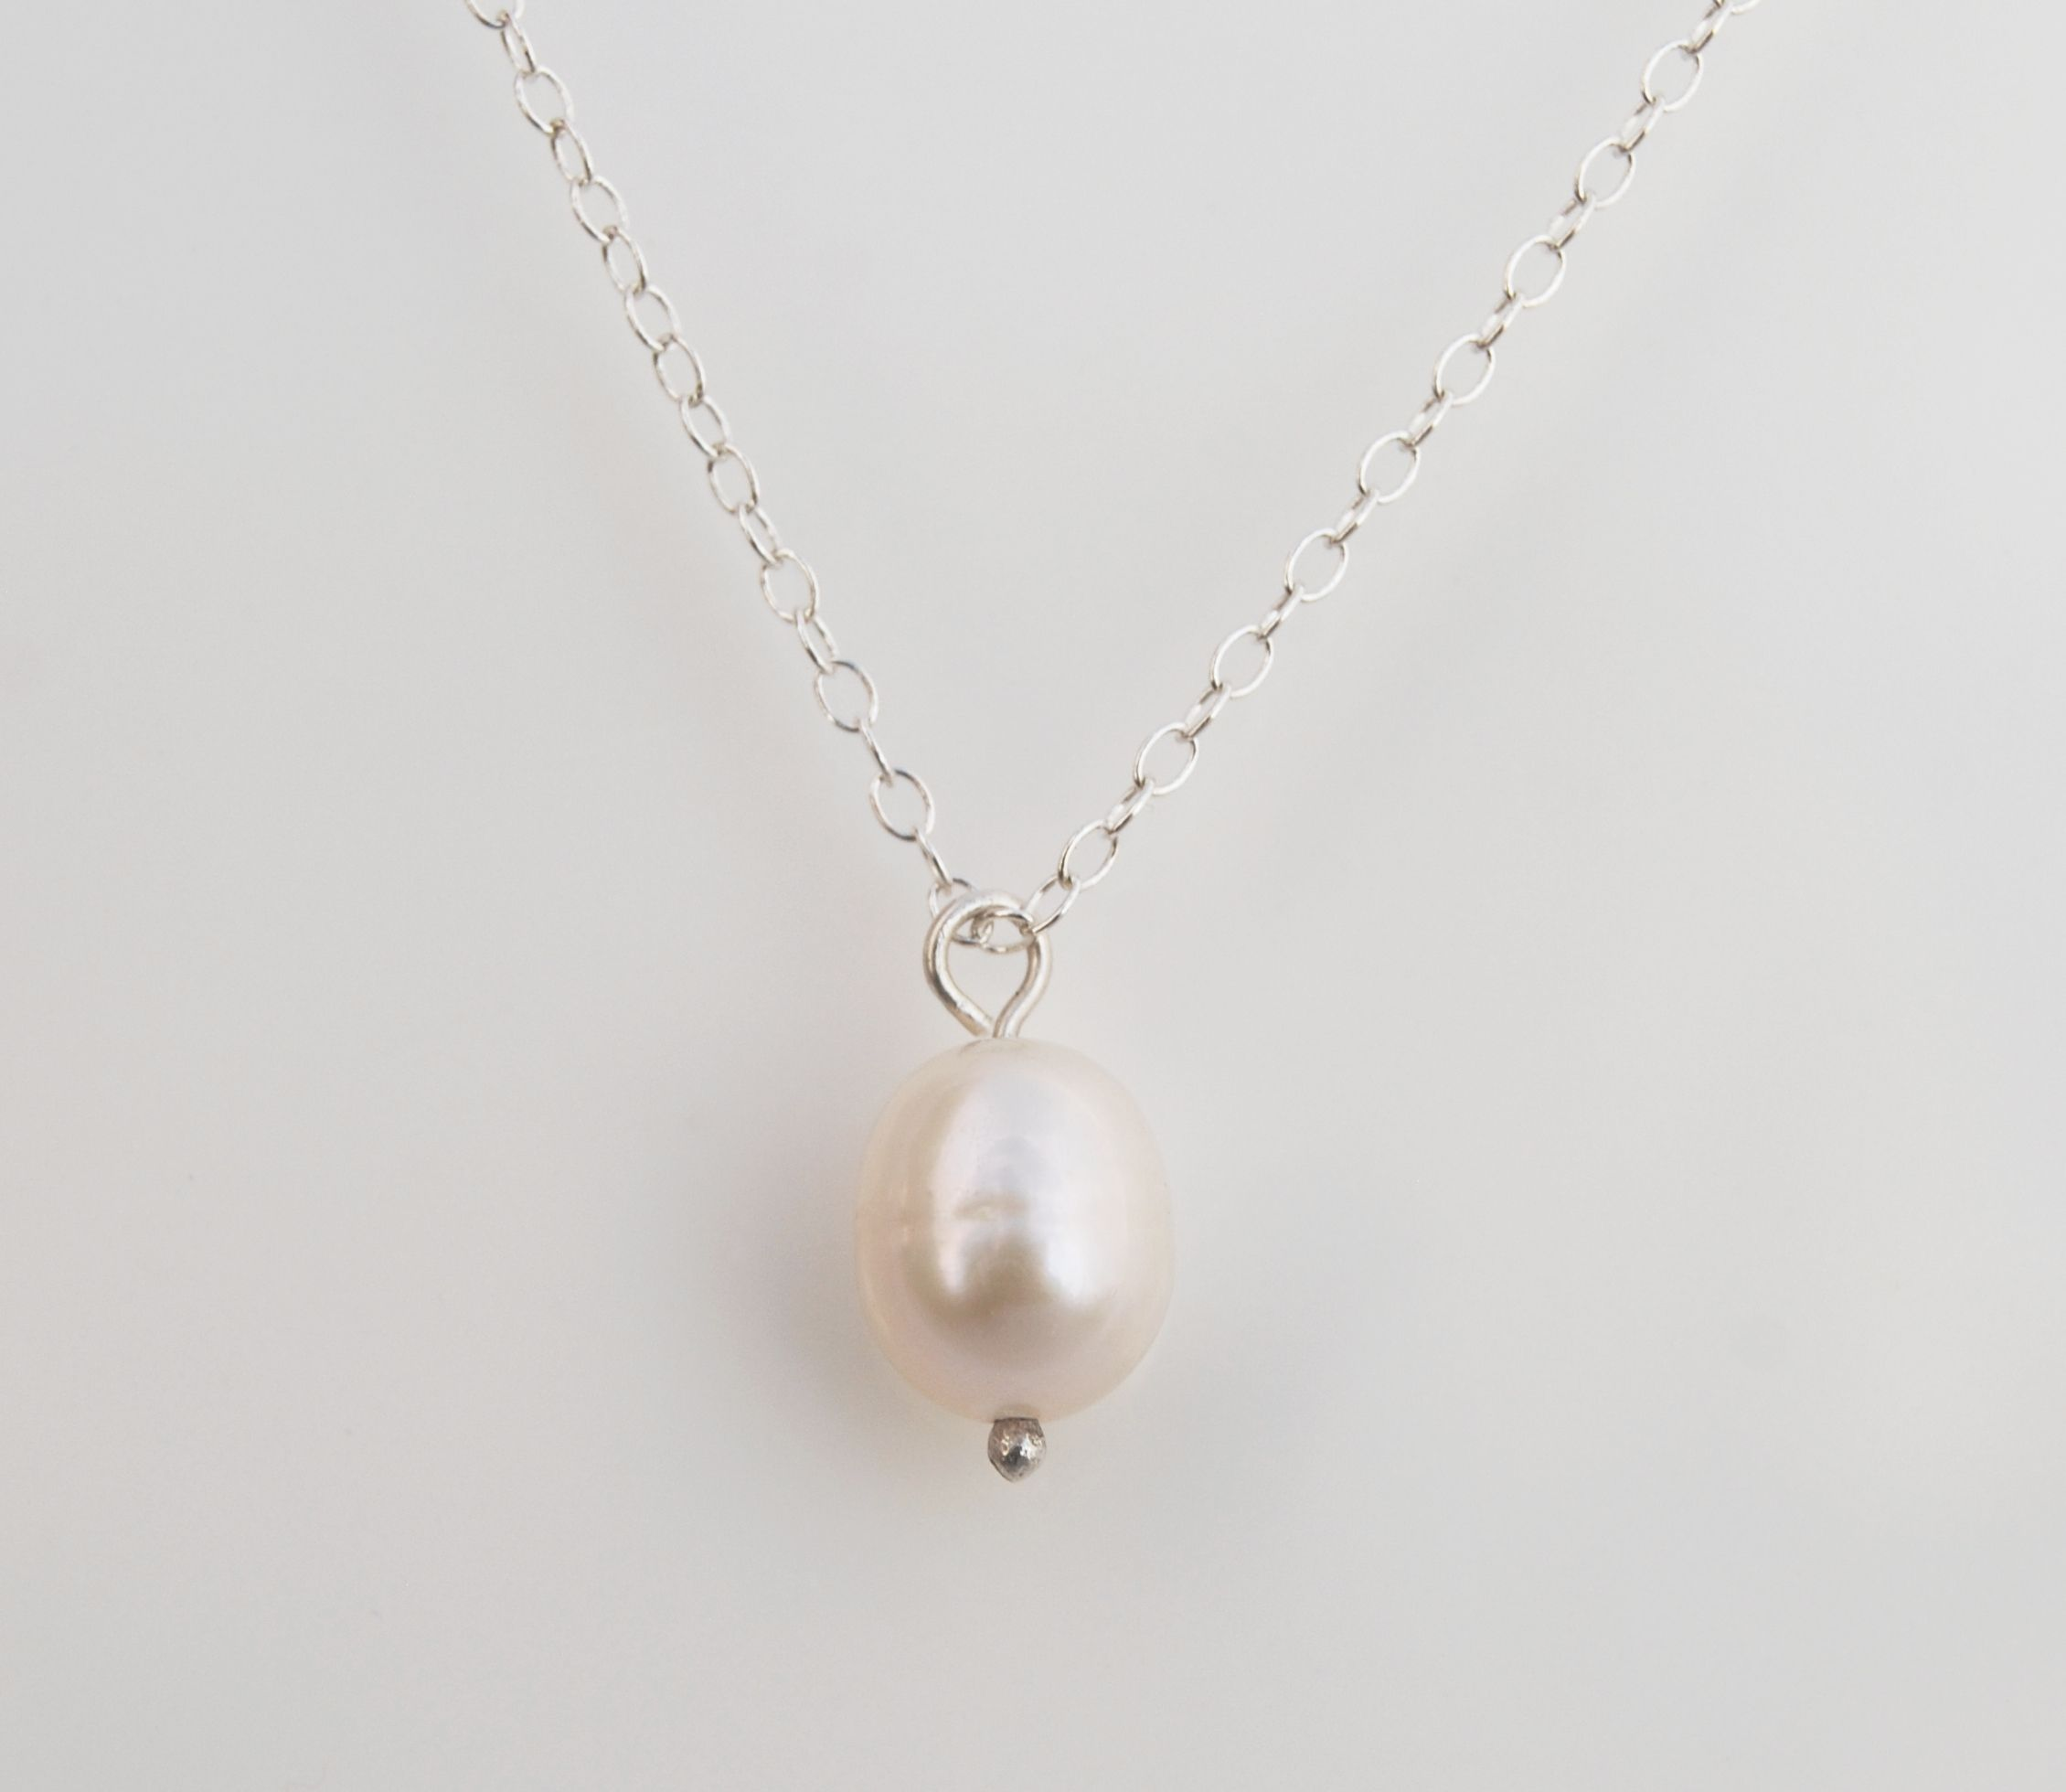 seed biwa douglas coleman products single necklace pearl main grey image in large strand and